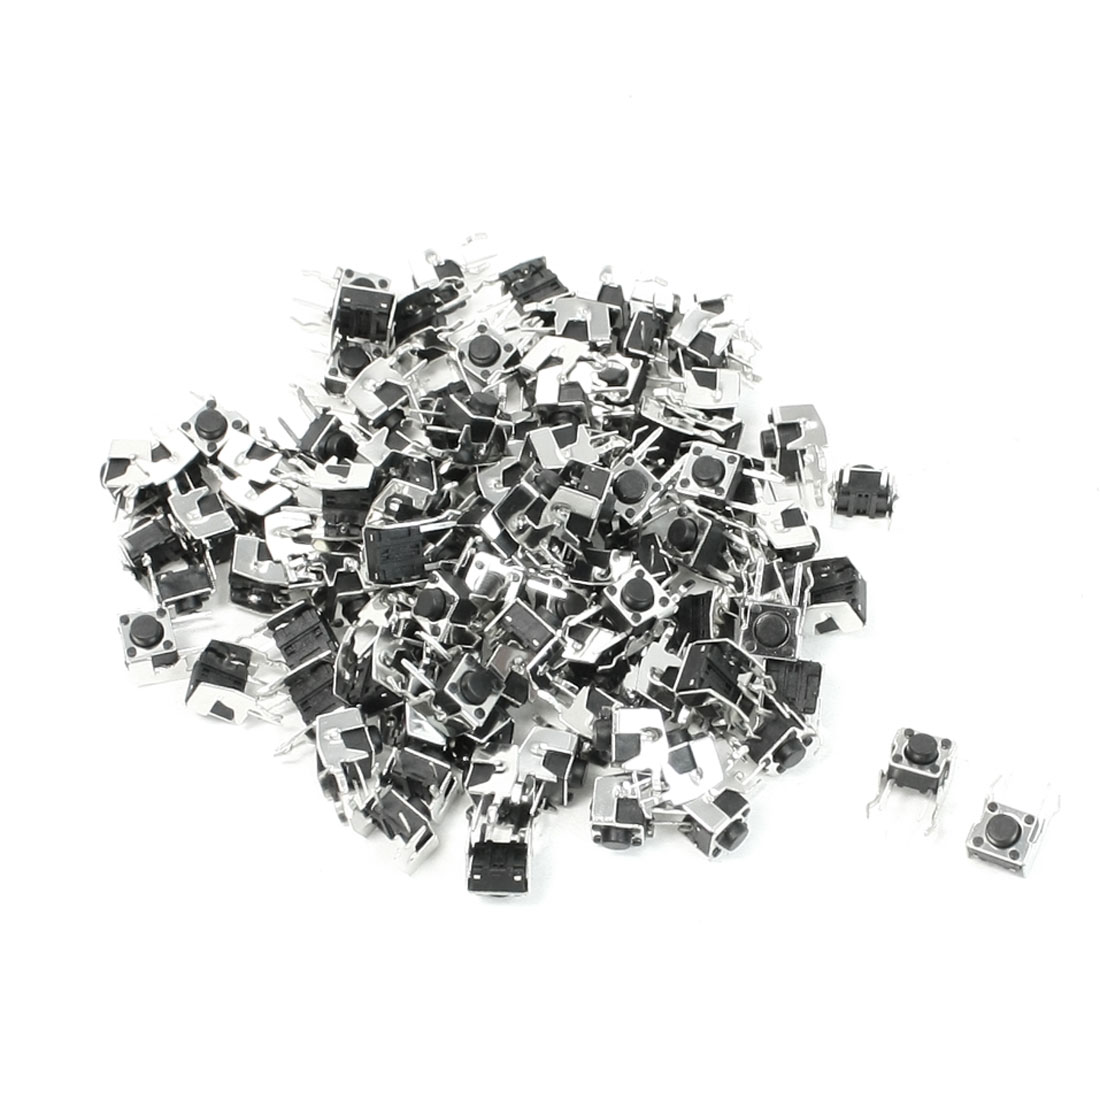 100pcs 6x6x5mm 2 Pin PCB Right Angle Momentary Tactile Push Button Switch